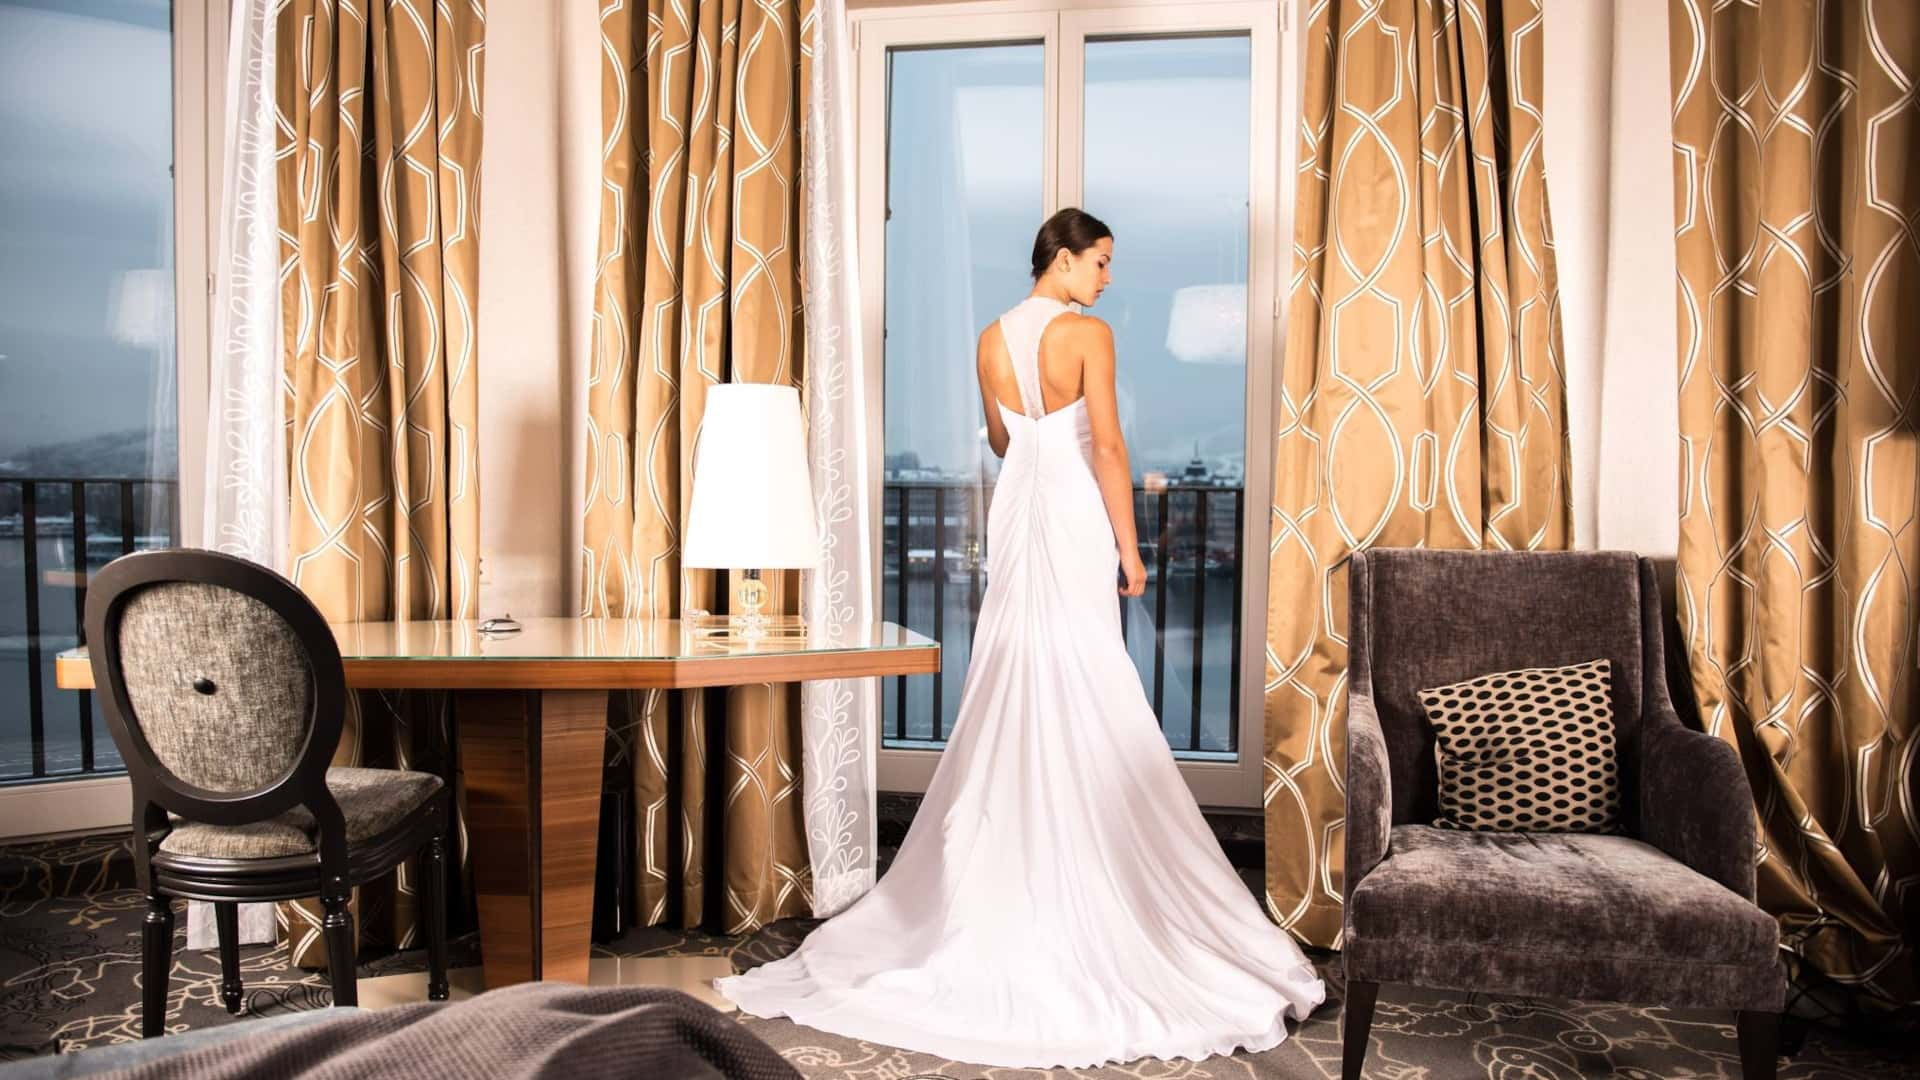 Benefits of Organizing a Wedding at a Hotel